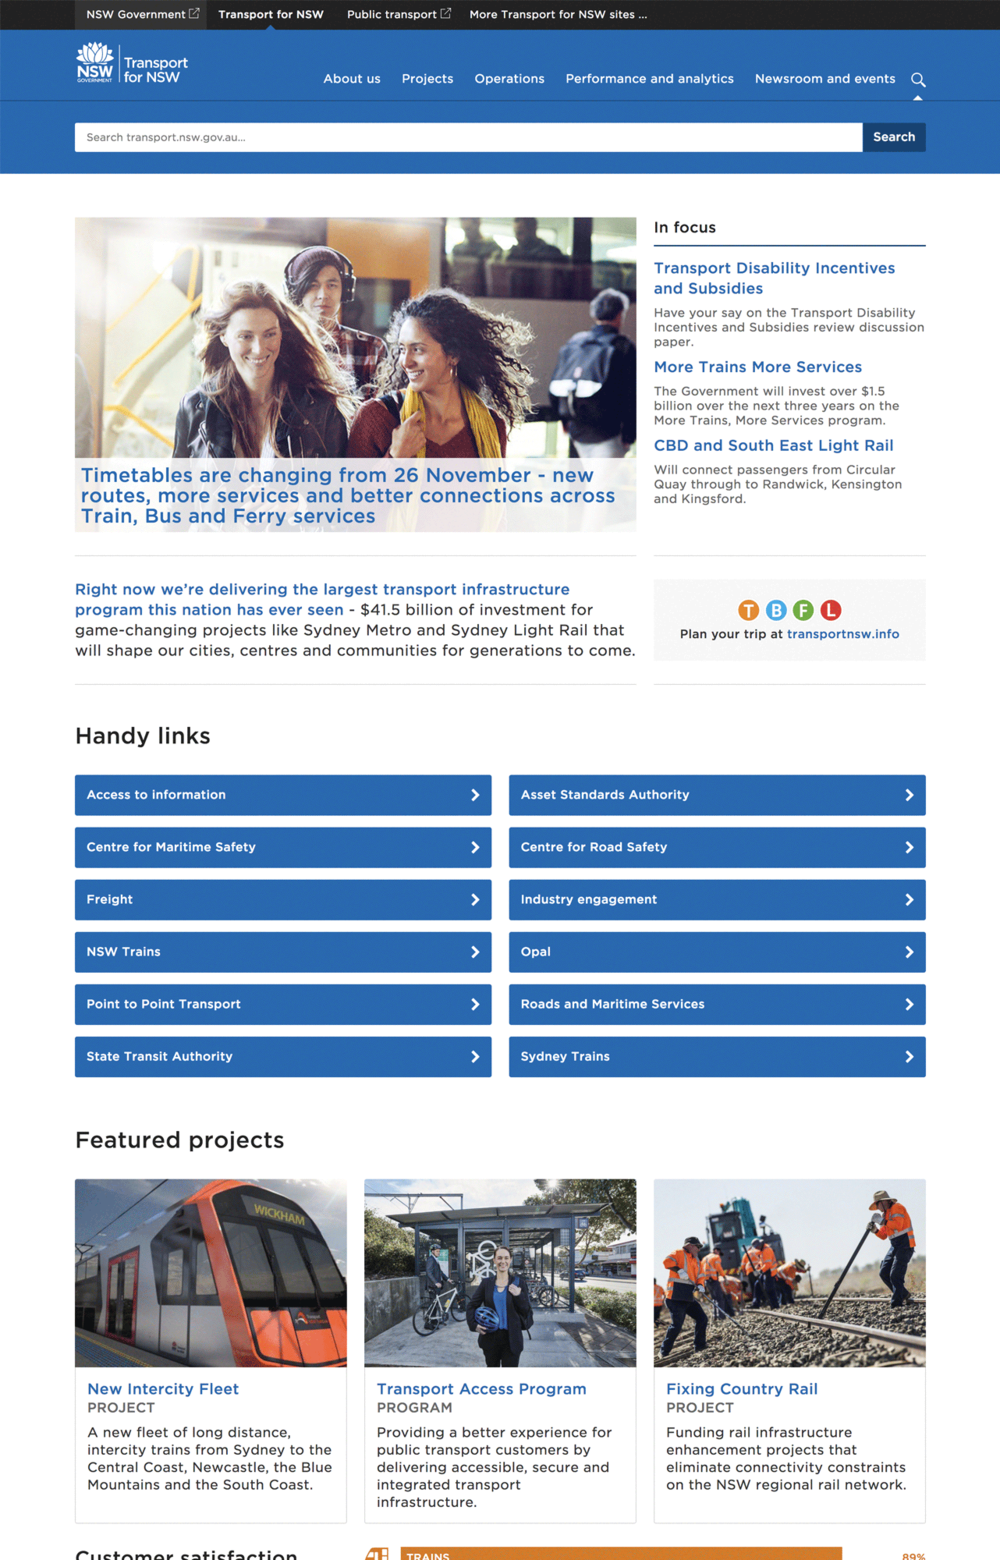 Transport for NSW website preview